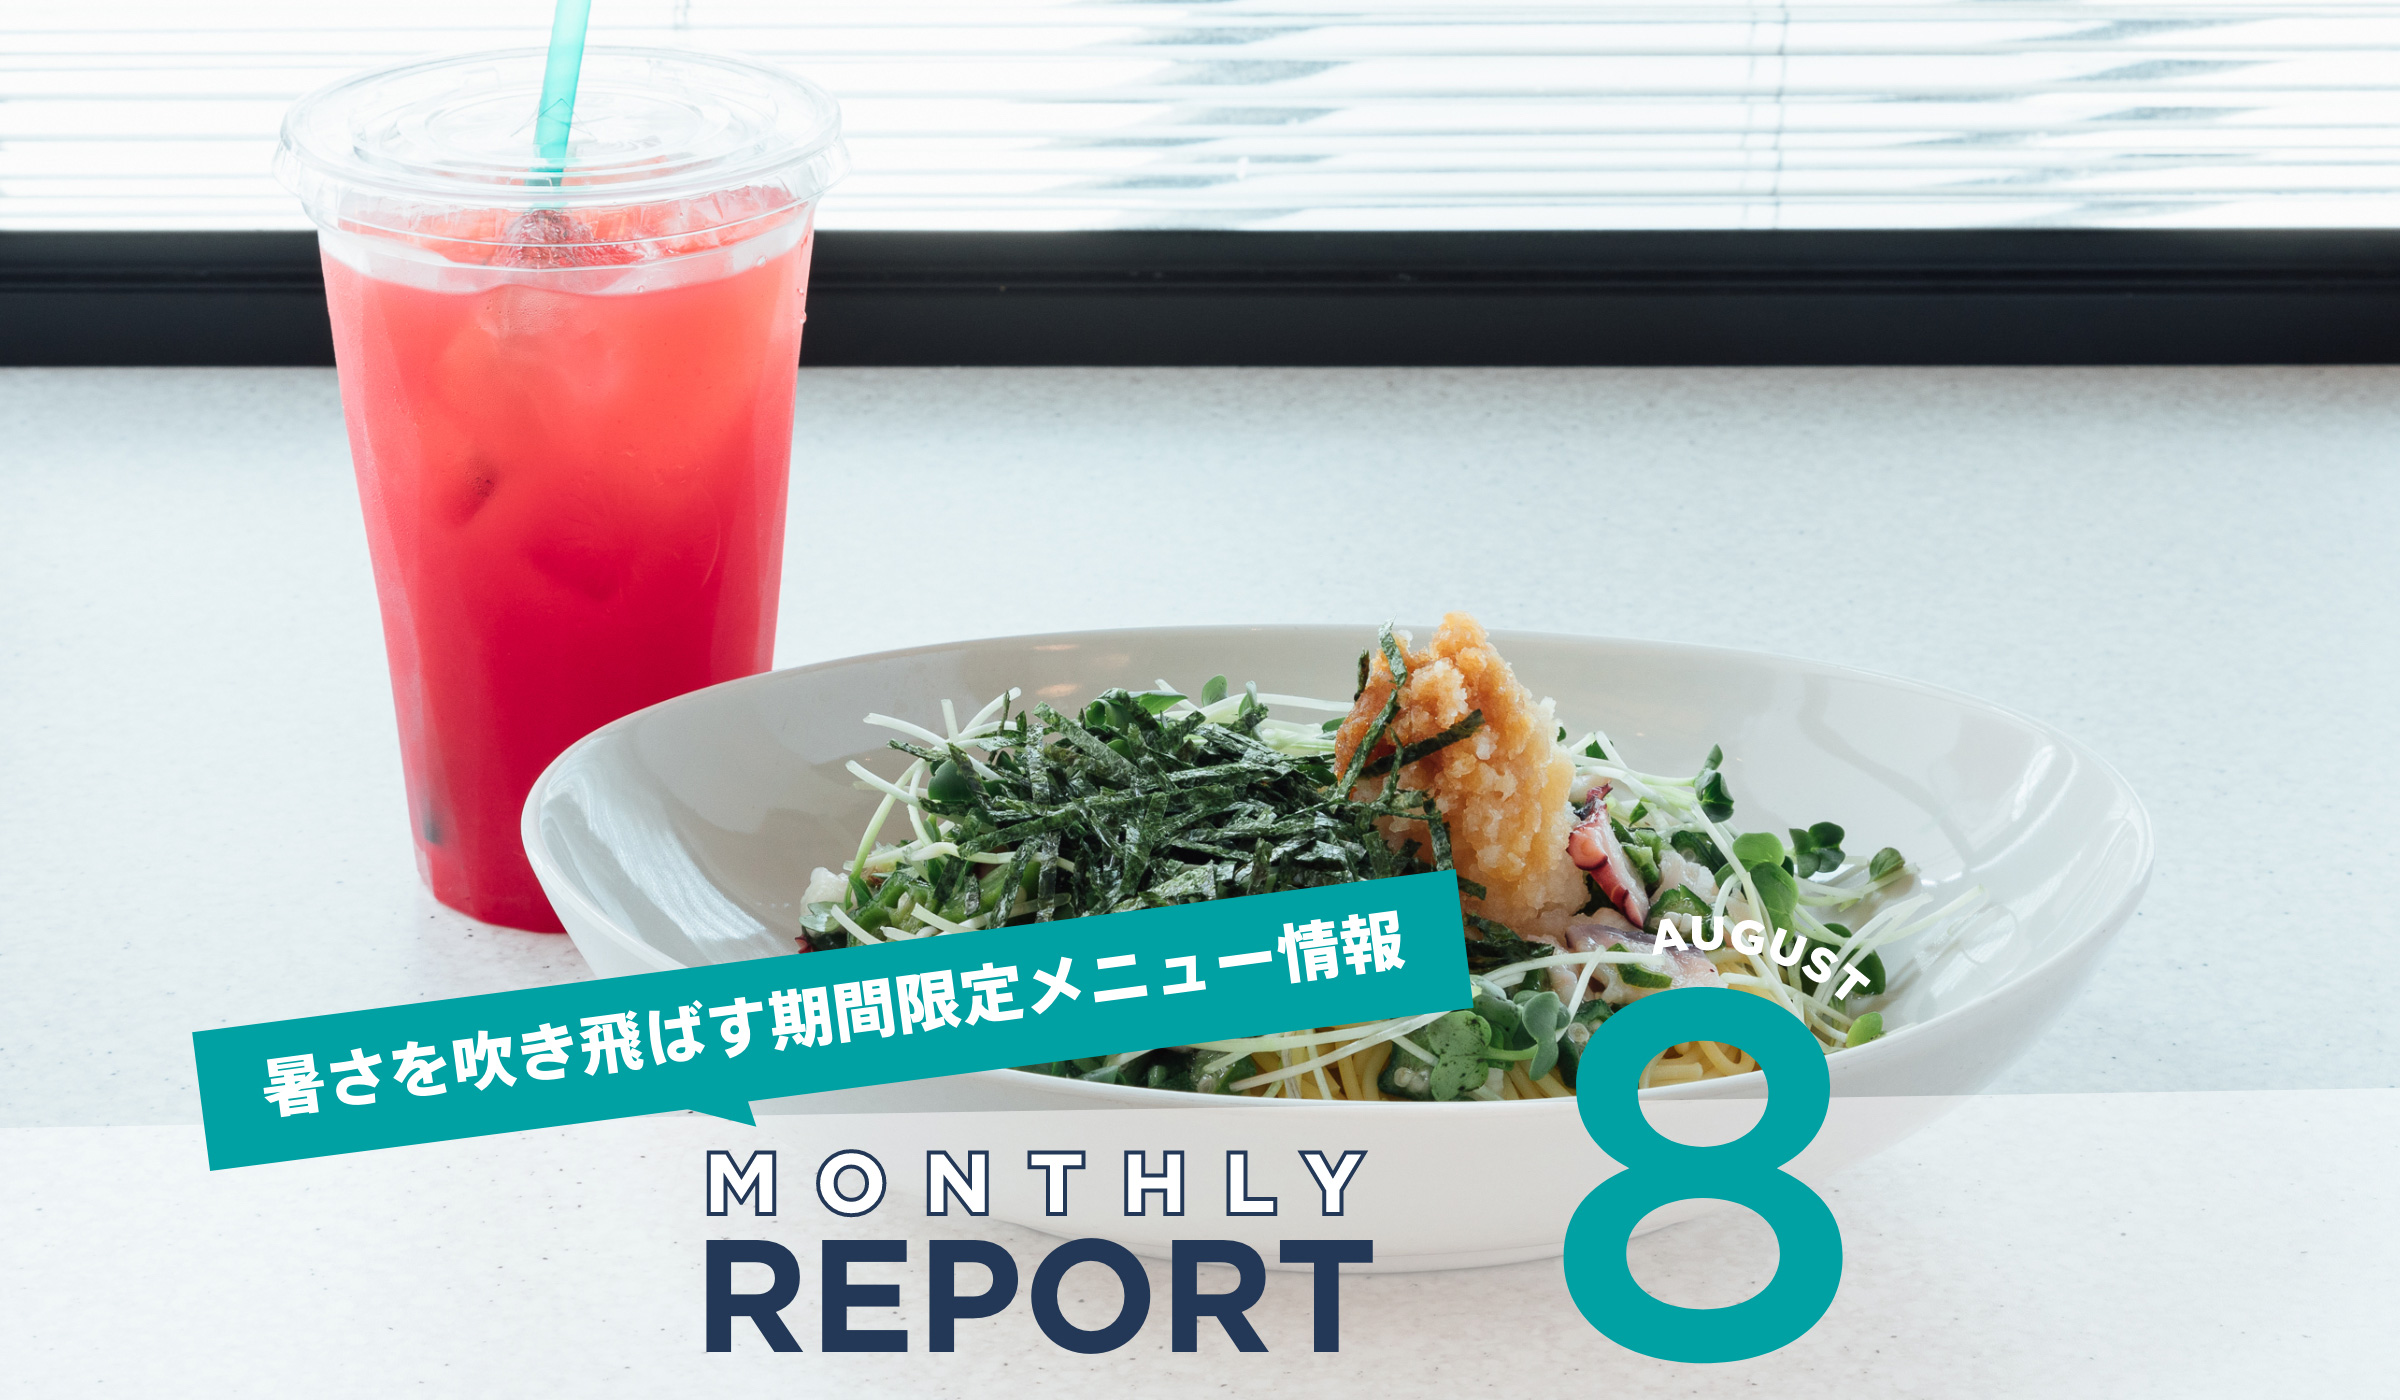 【Monthly REPORT 8】暑さを吹き飛ばす期間限定メニュー情報